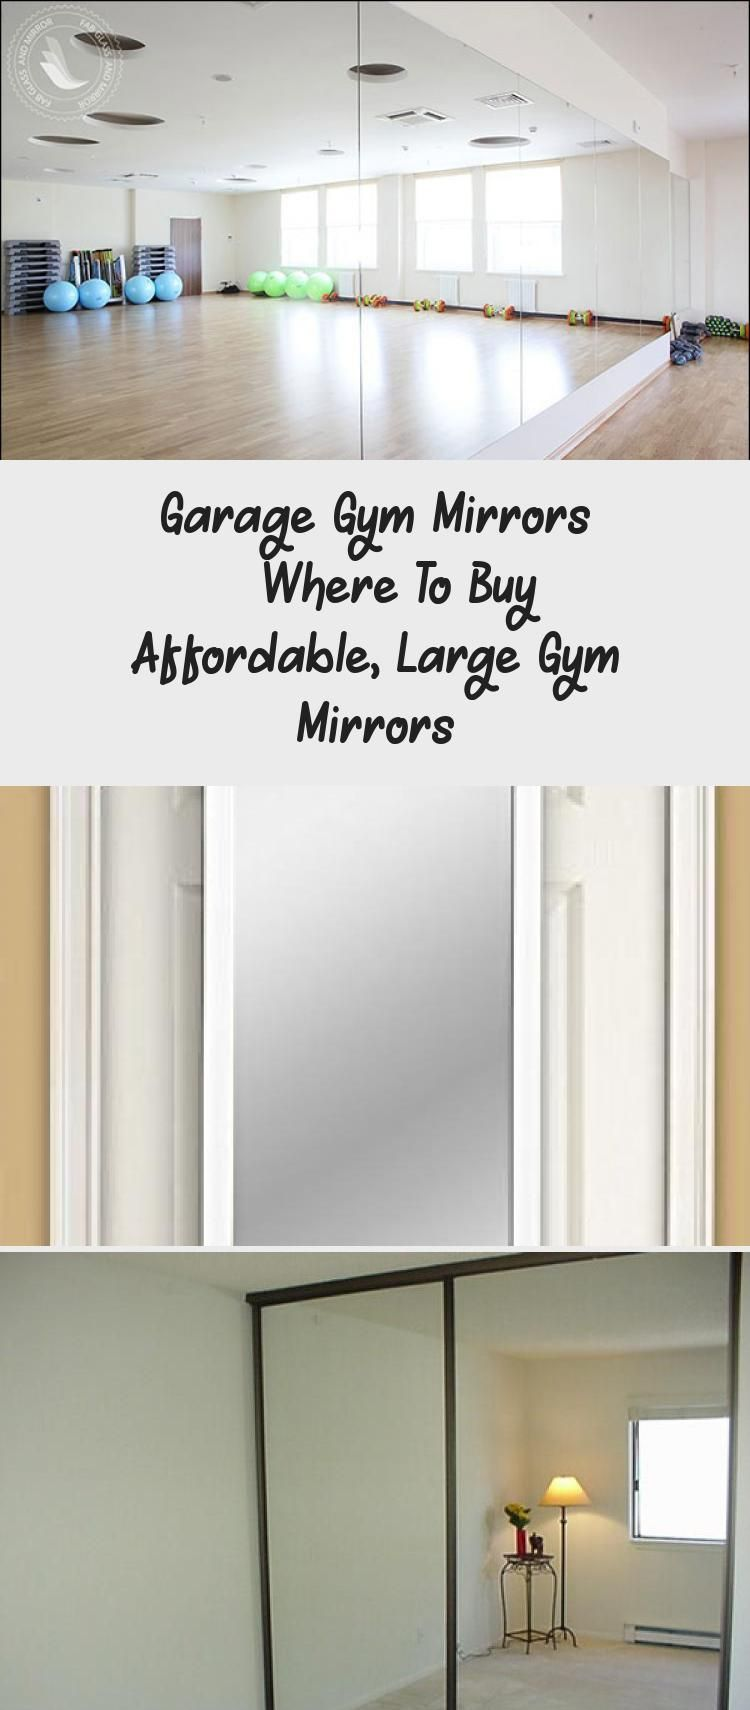 Fab Glass And Mirror Activity Mirrors For Gyms And Studios Smallhomegym Homegymmirrors Modernhomegym Homegympe In 2020 Gym Mirrors Home Gym Mirrors Gym Mirror Wall